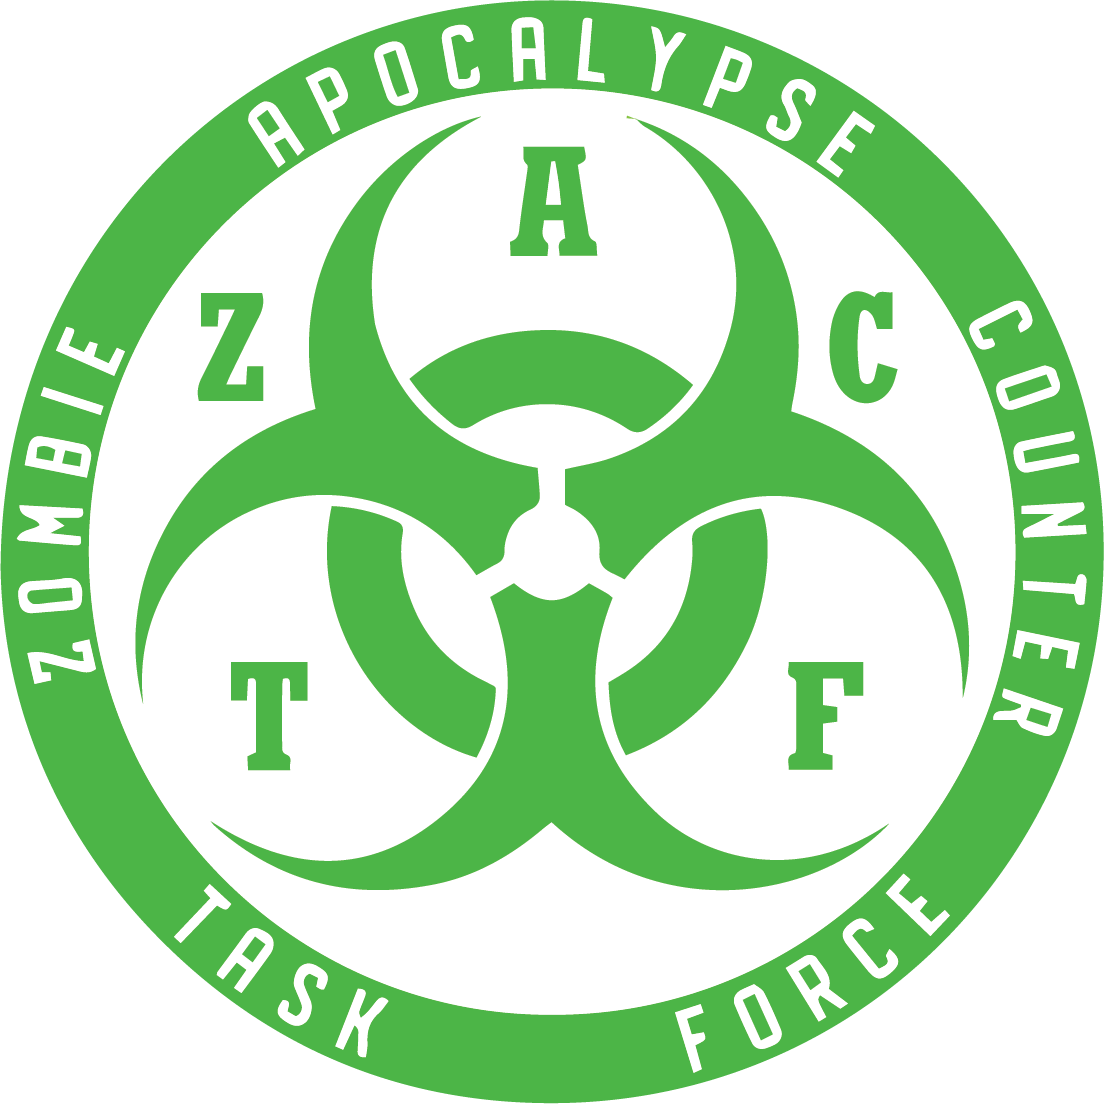 Zombie Apocalypse Counter Task Force